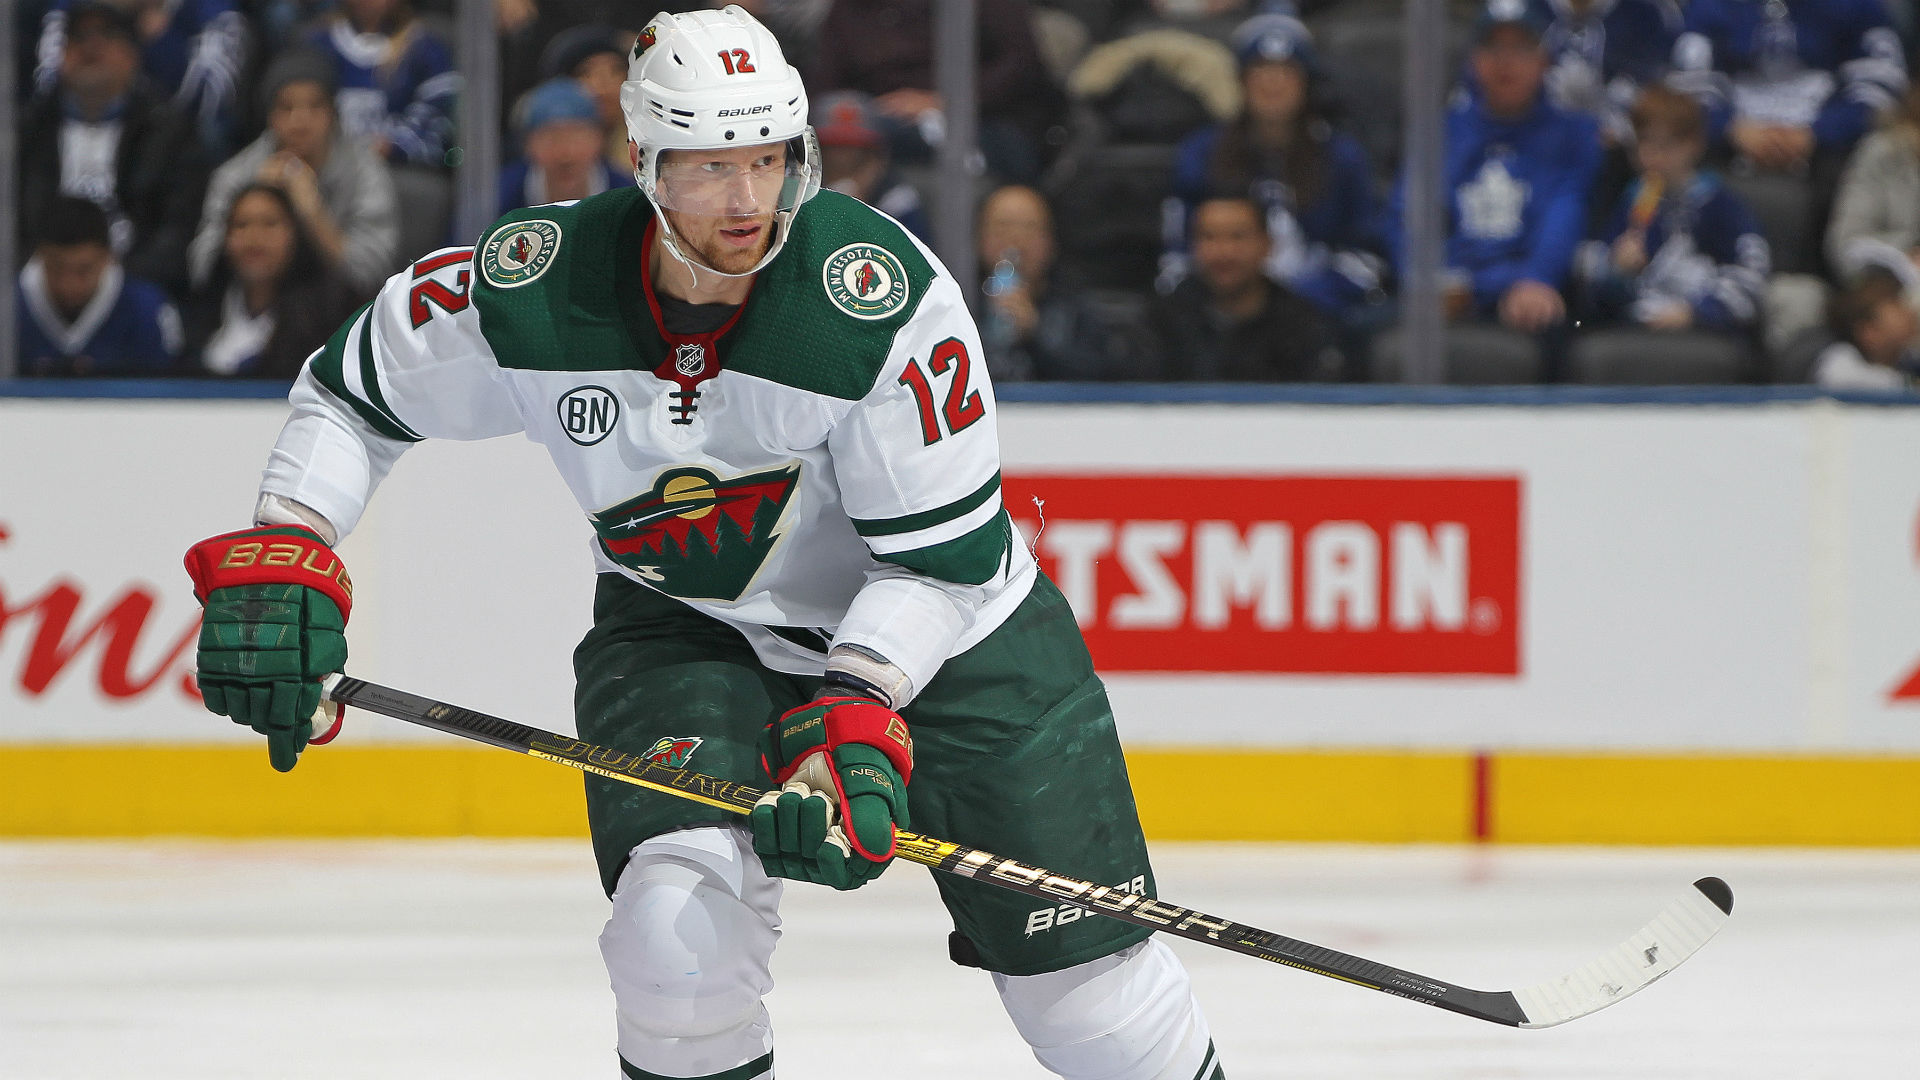 meet 7a07d 1c1cf Eric Staal agrees to 2-year extension with Wild | Sporting News